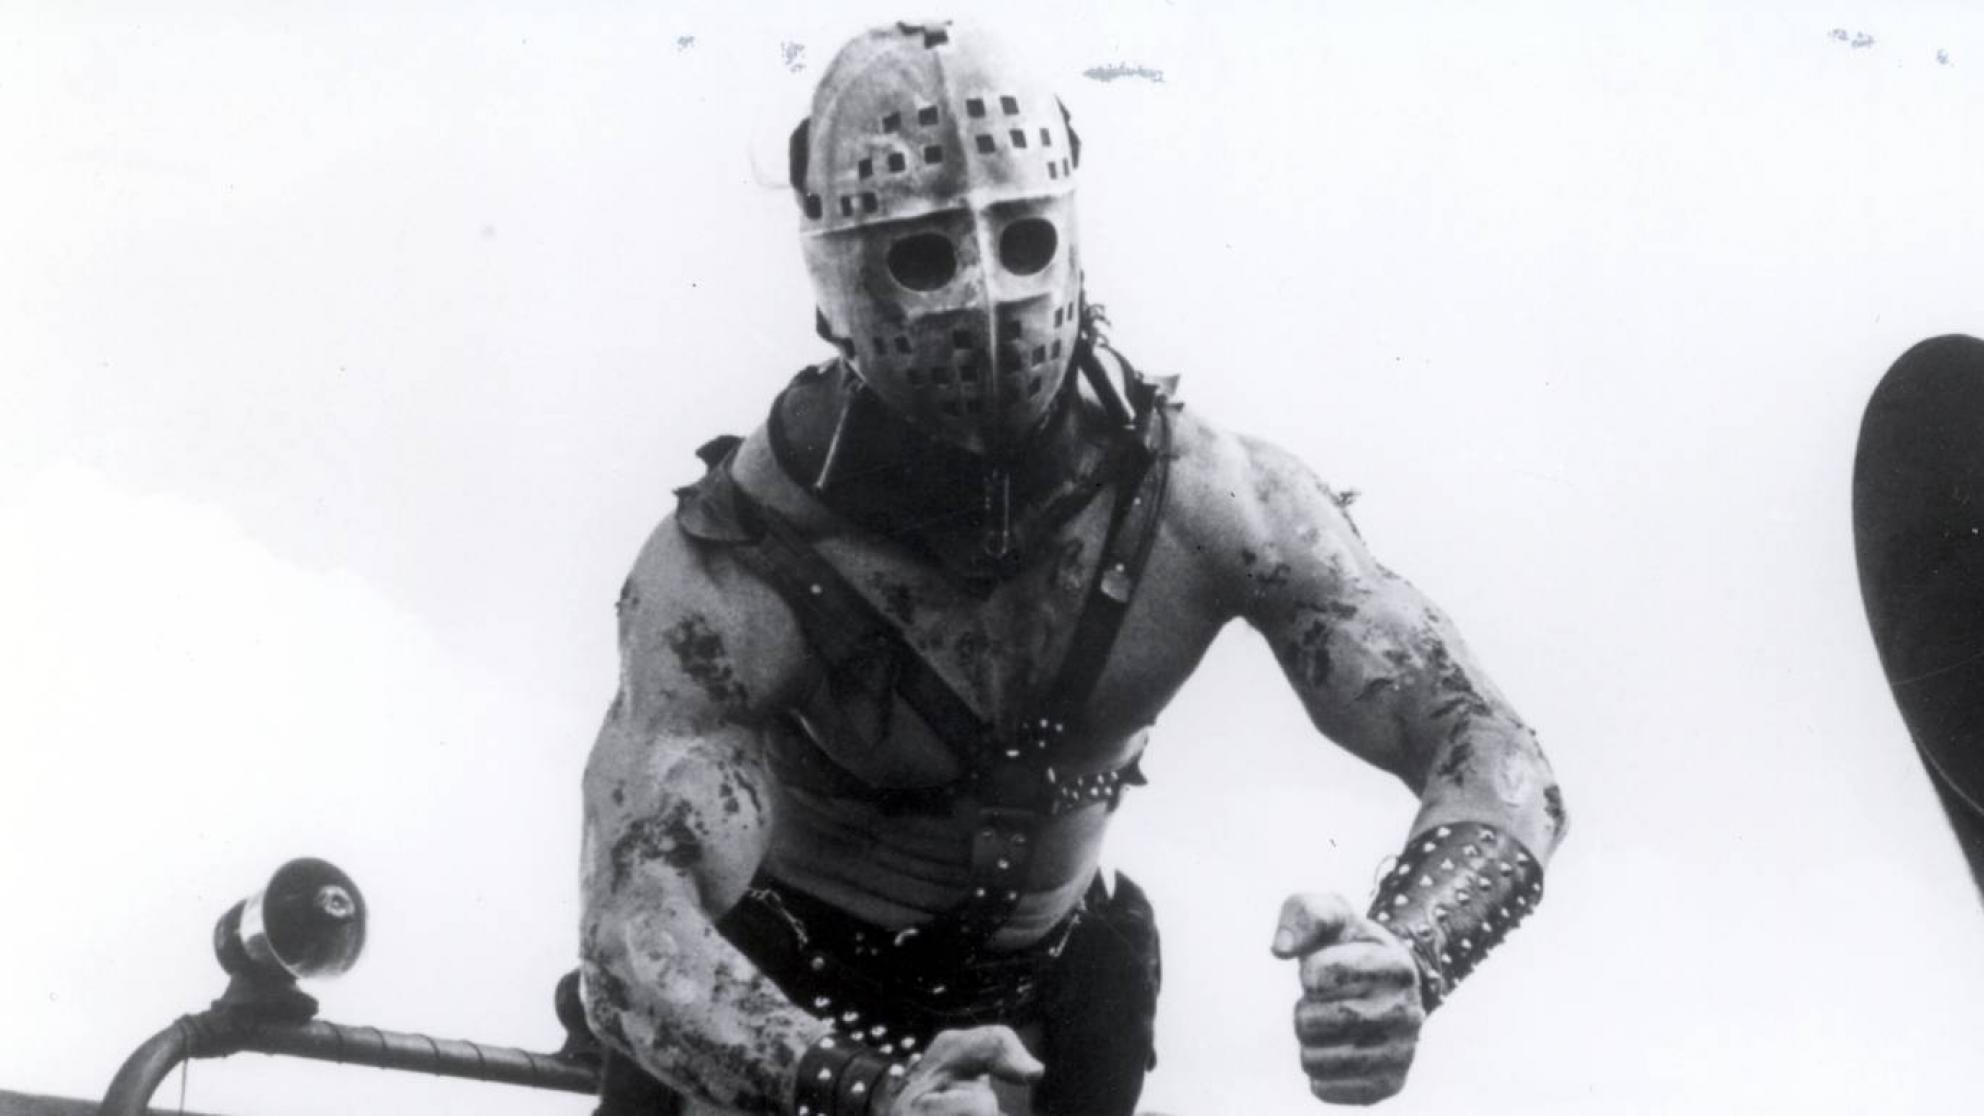 Mad Max 2 villain Humungus strikes a muscular pose with his face covered by a hockey mask